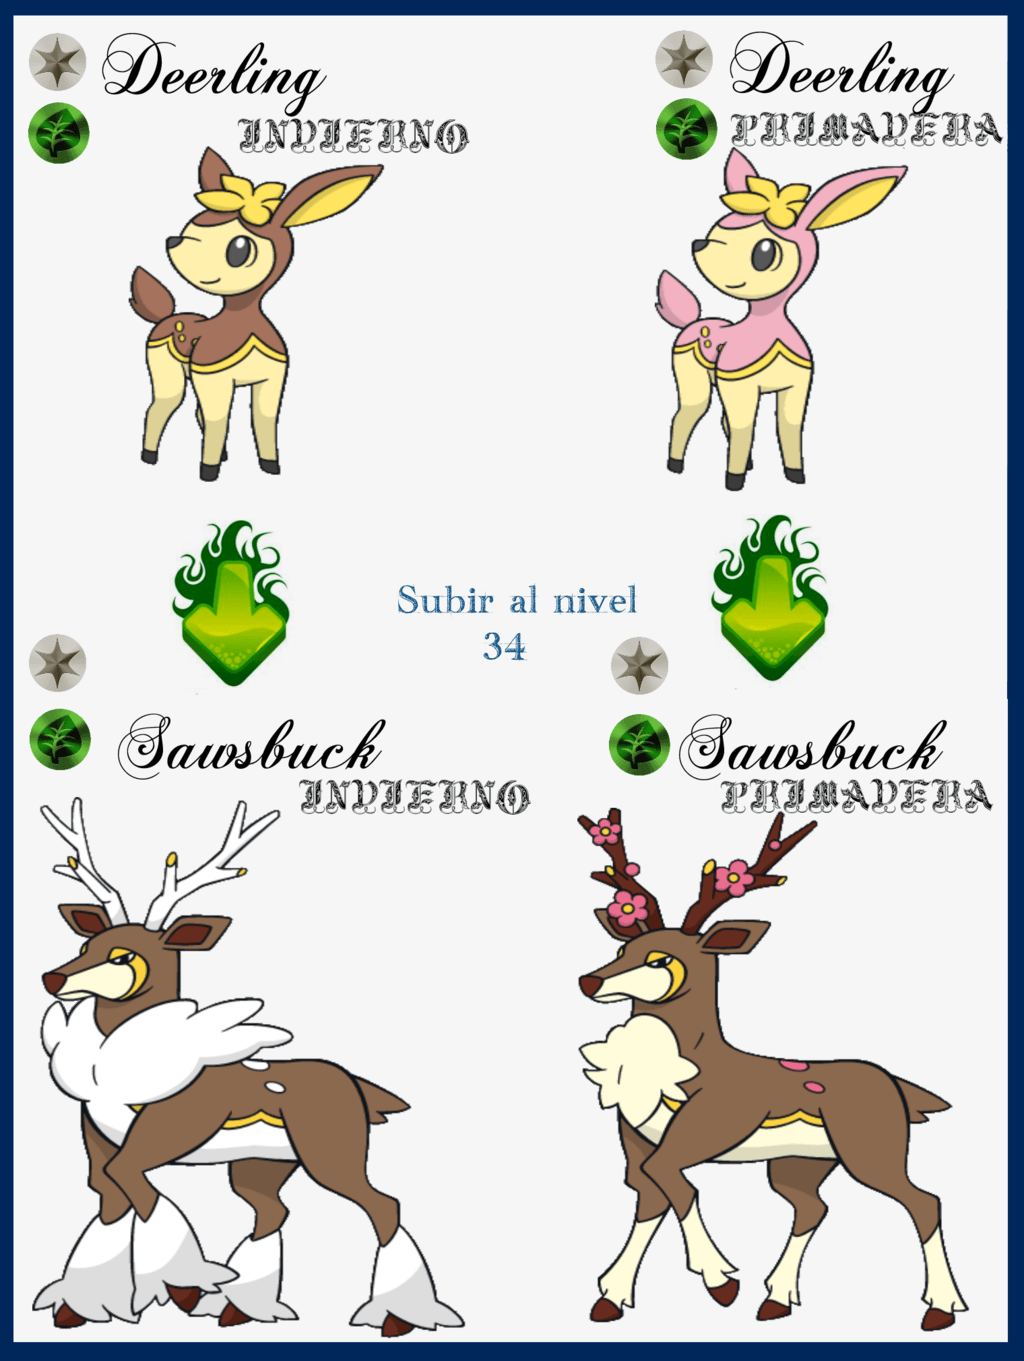 254 Deerling Evoluciones by Maxconnery